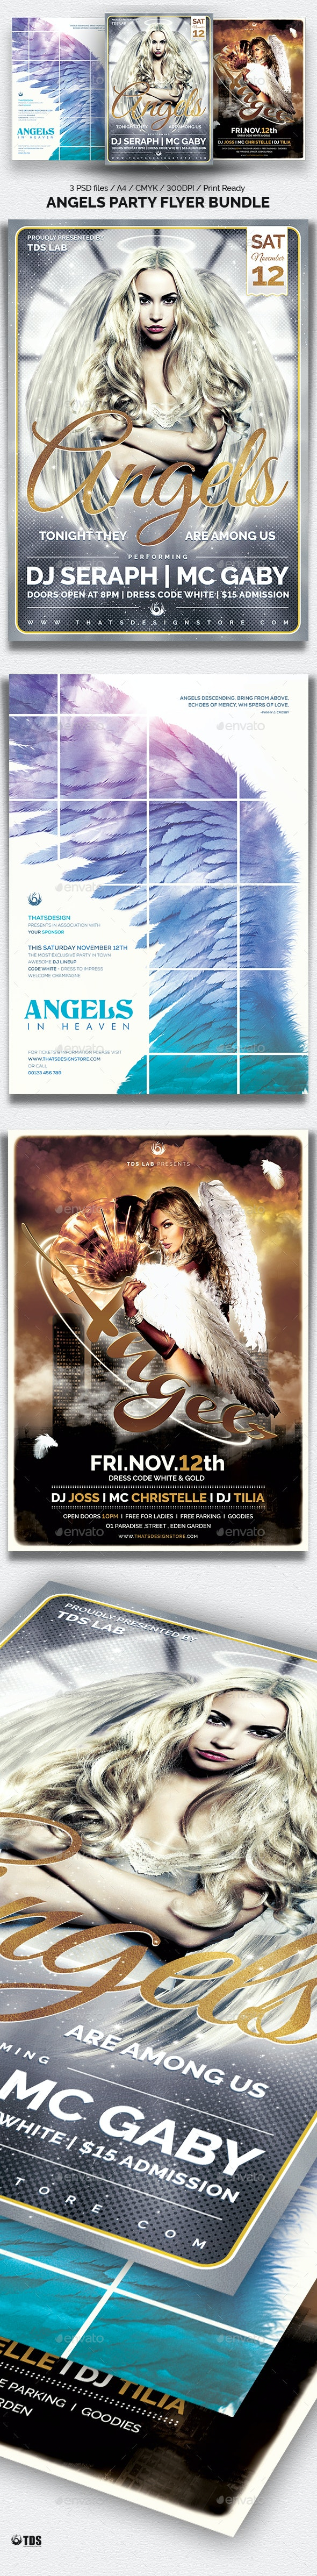 Angels Party Flyer Bundle - Clubs & Parties Events